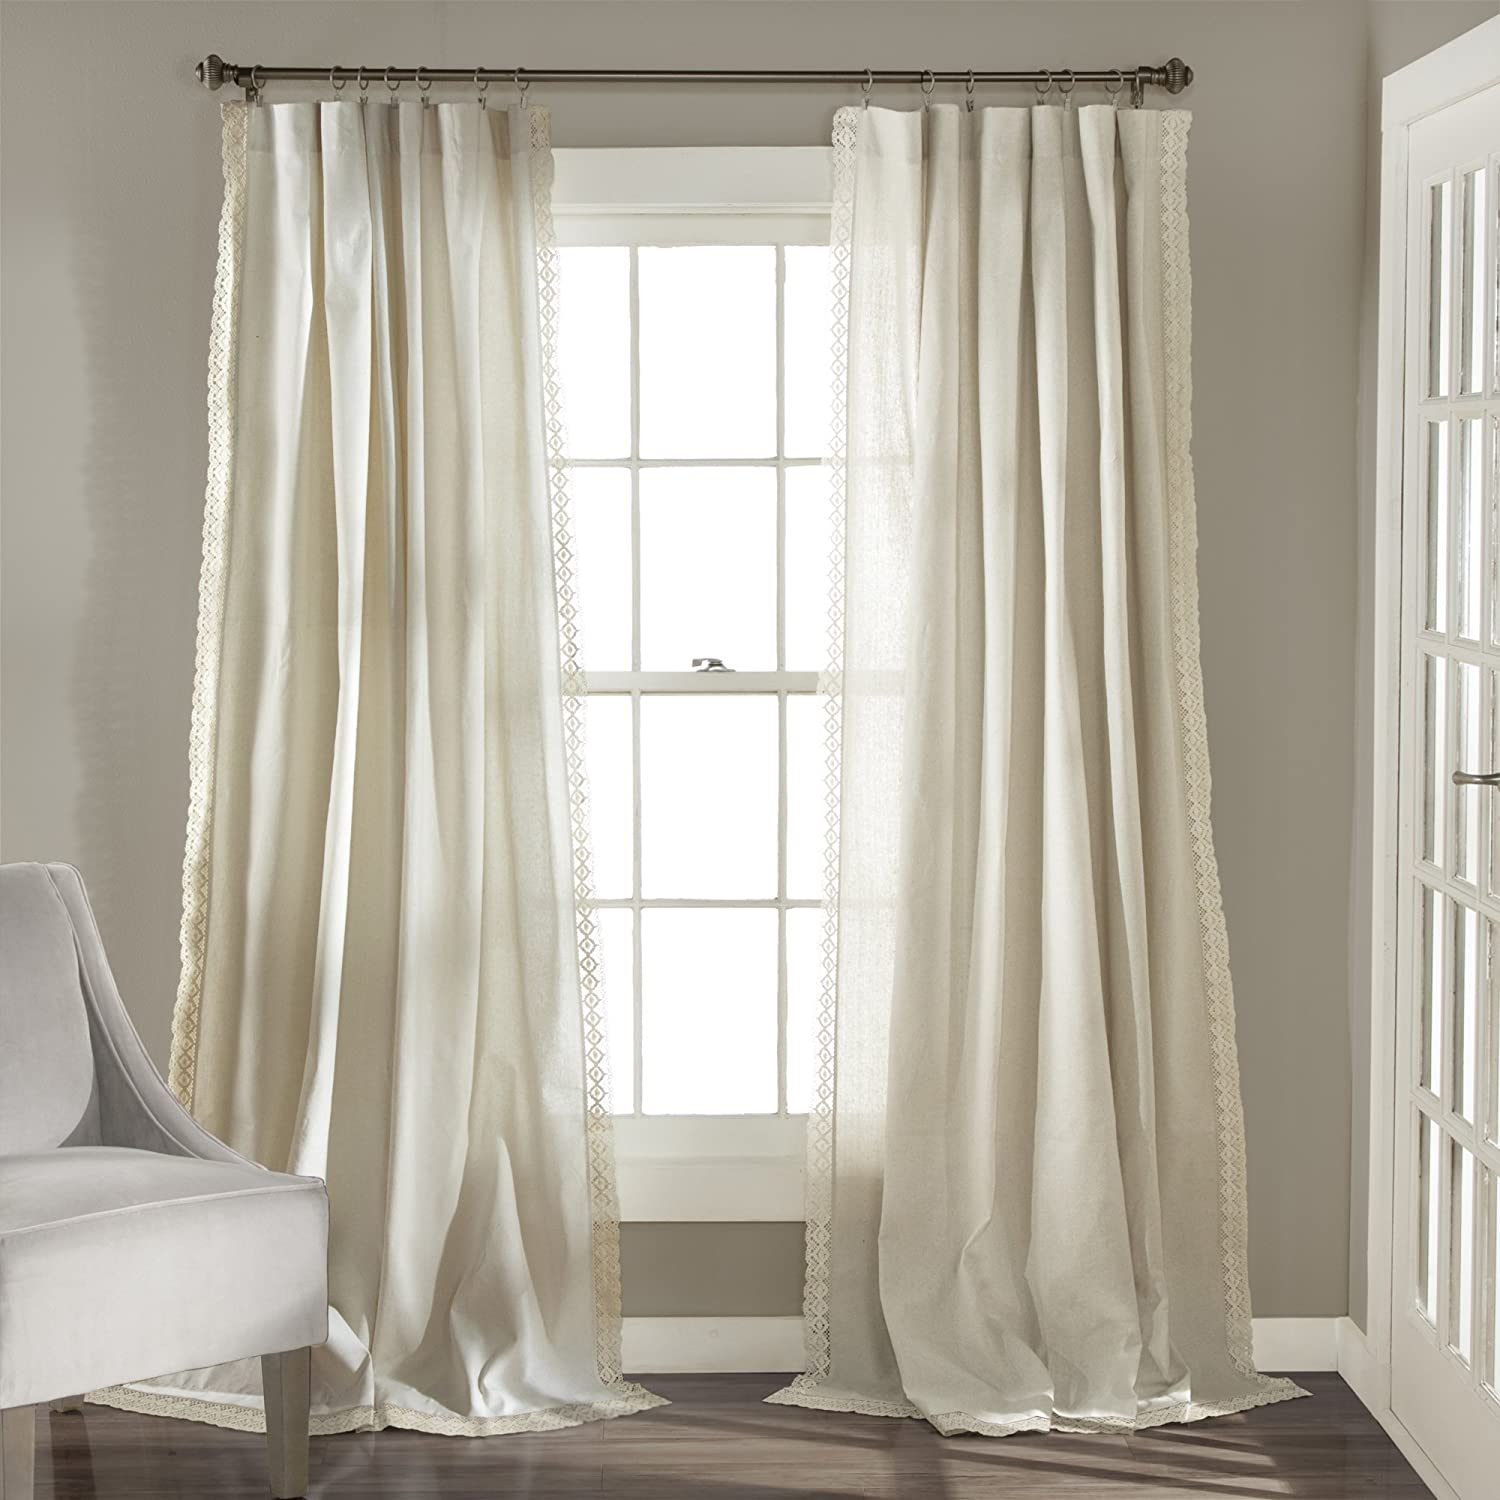 """Lush Decor Rosalie Window Curtains Farmhouse, Rustic Style Panel Set for Living, Dining Room, Bedroom (Pair), 108"""" x 54"""" Ivory, 108"""" x 54"""""""